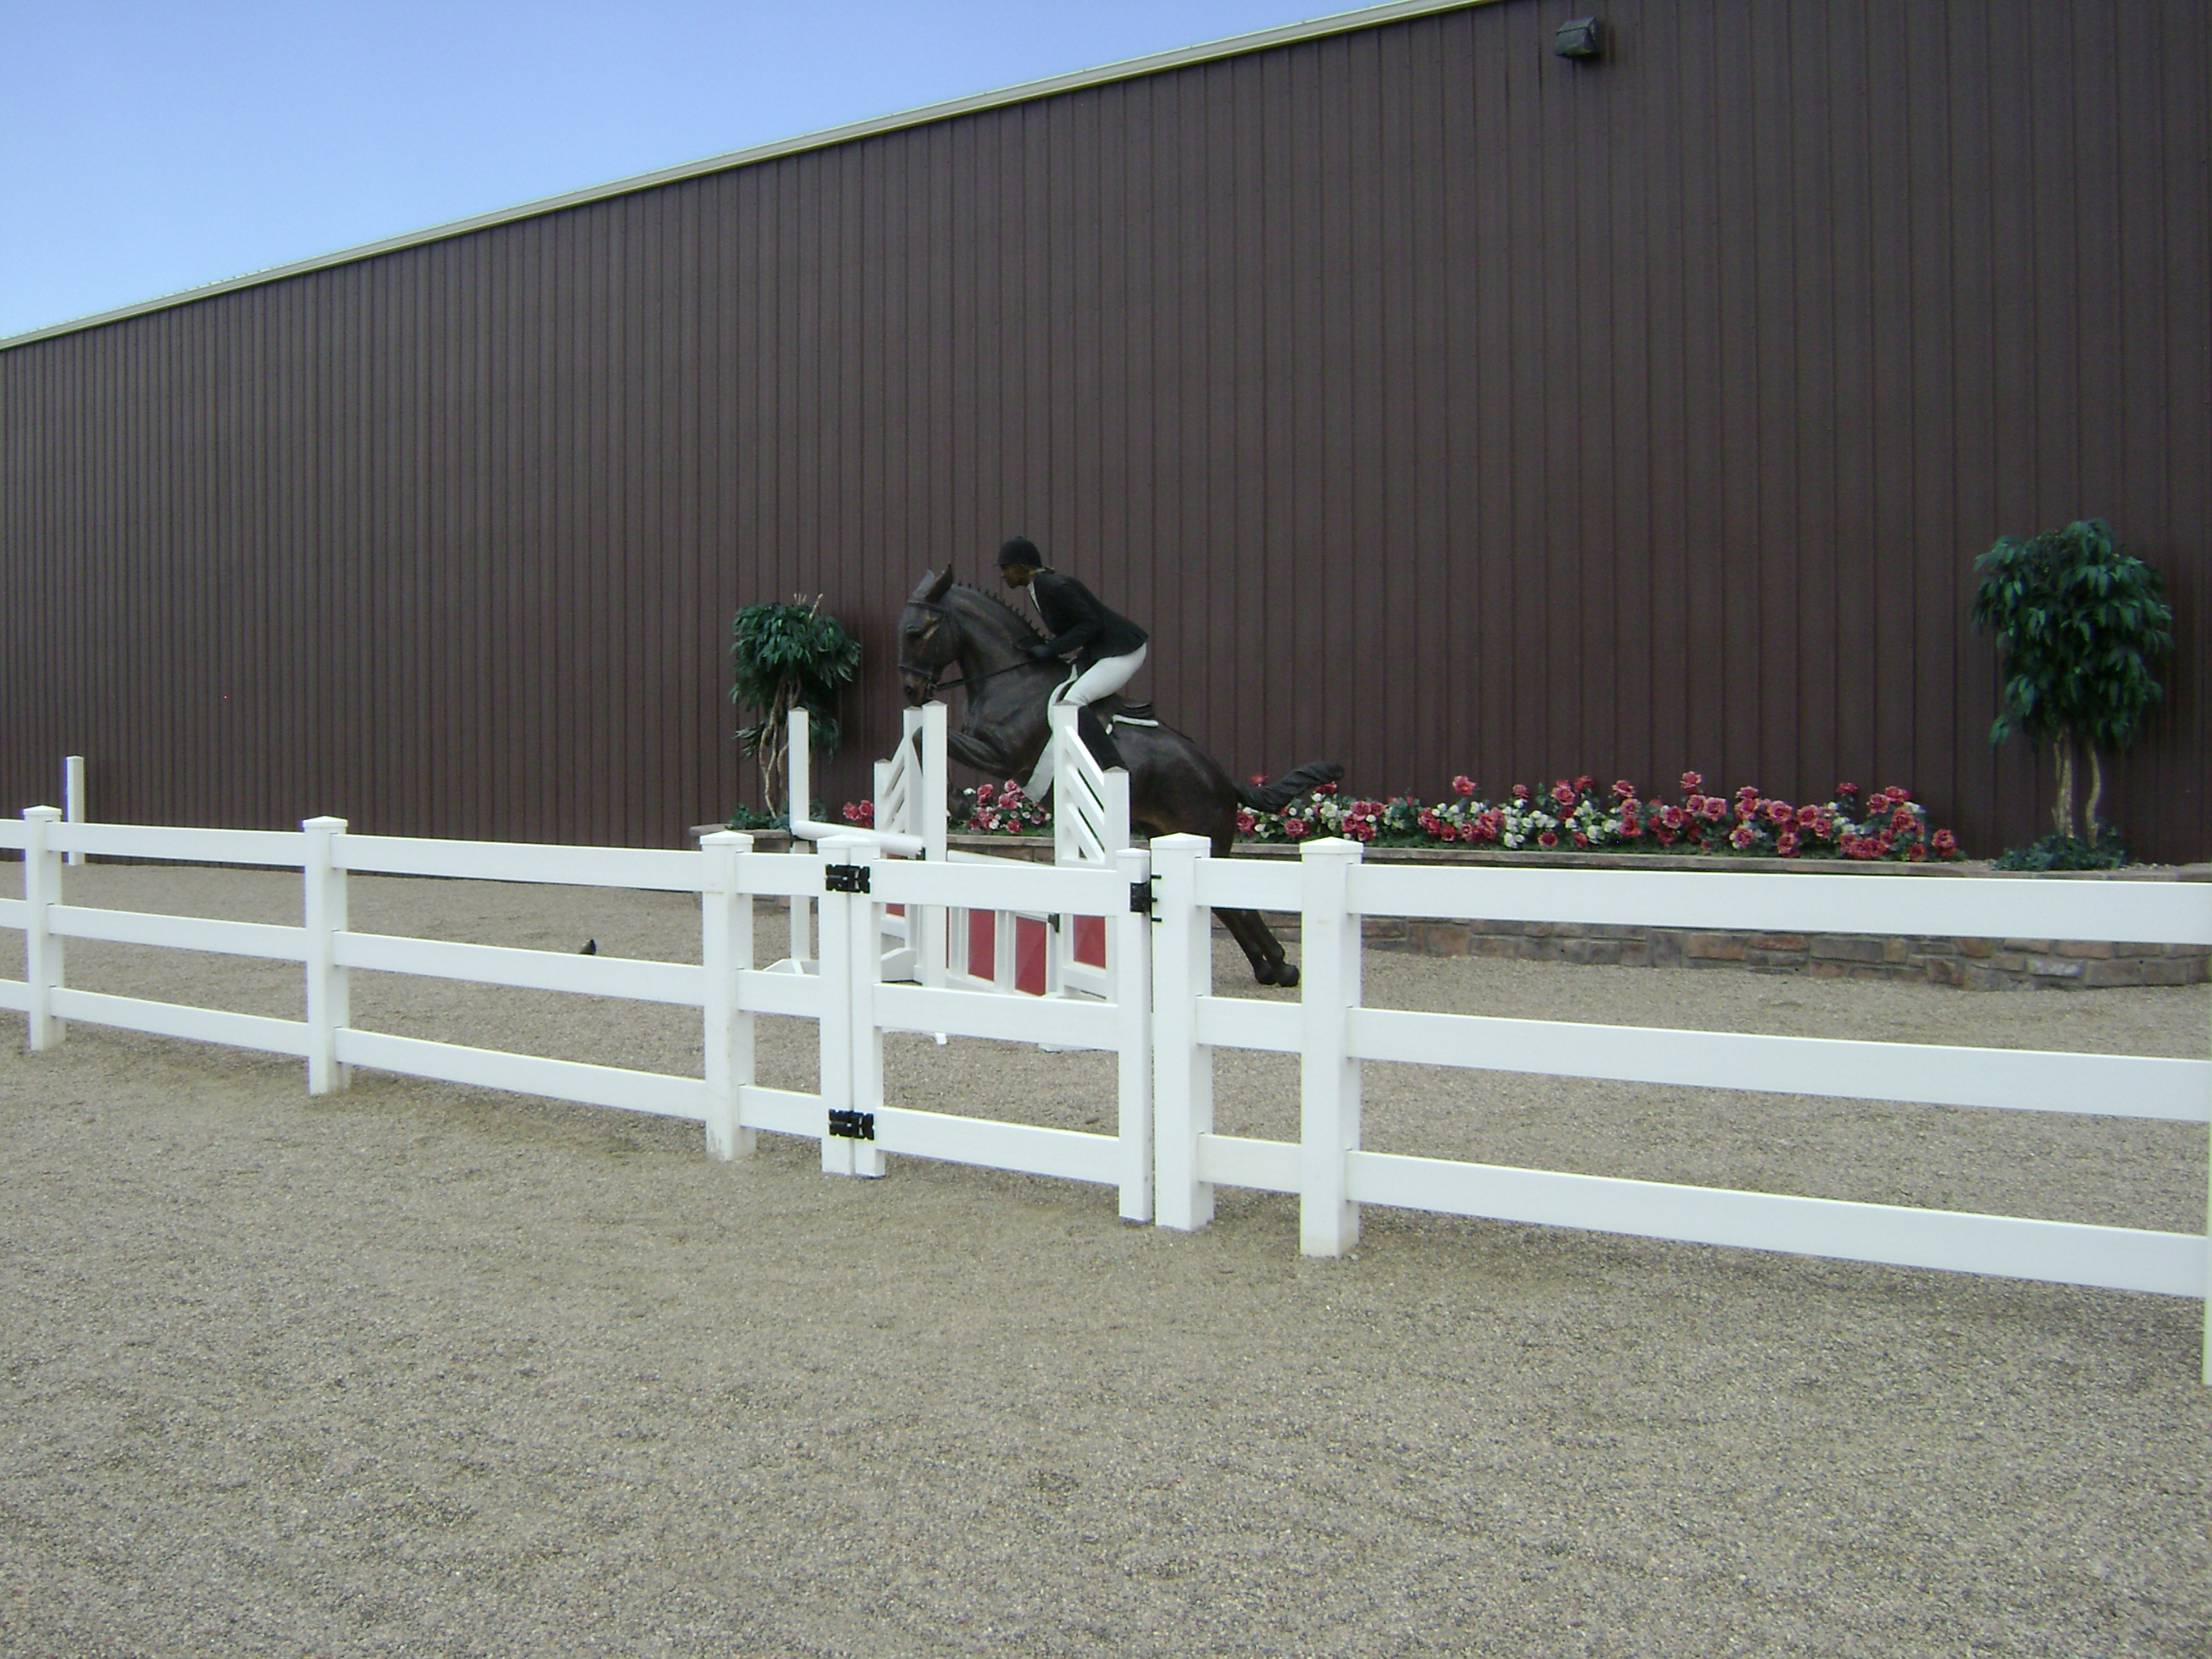 Black Eagle Fence Loveland Colorado Co Localdatabase Com